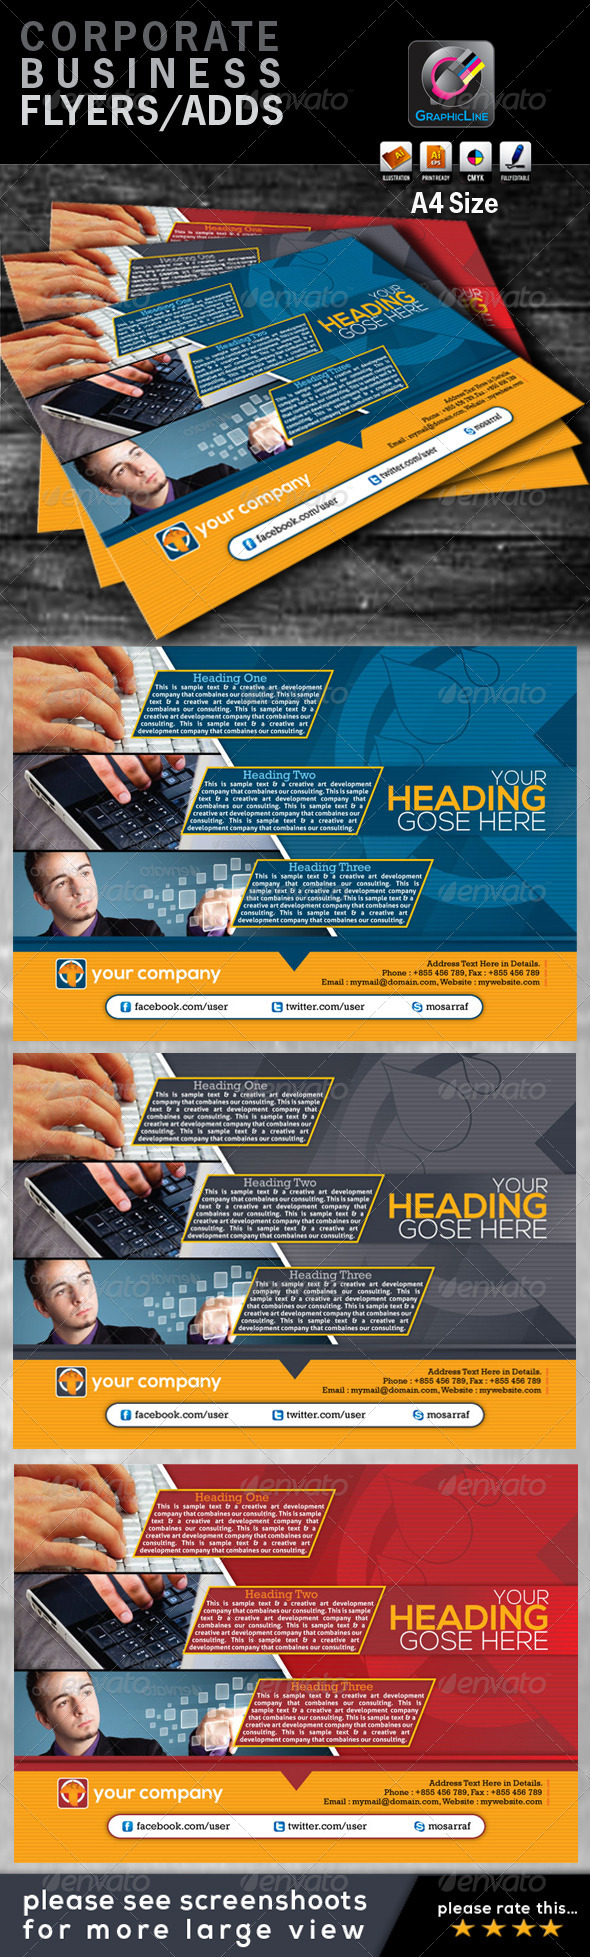 GraphicRiver Corporate Business Flyers Ads 4423201